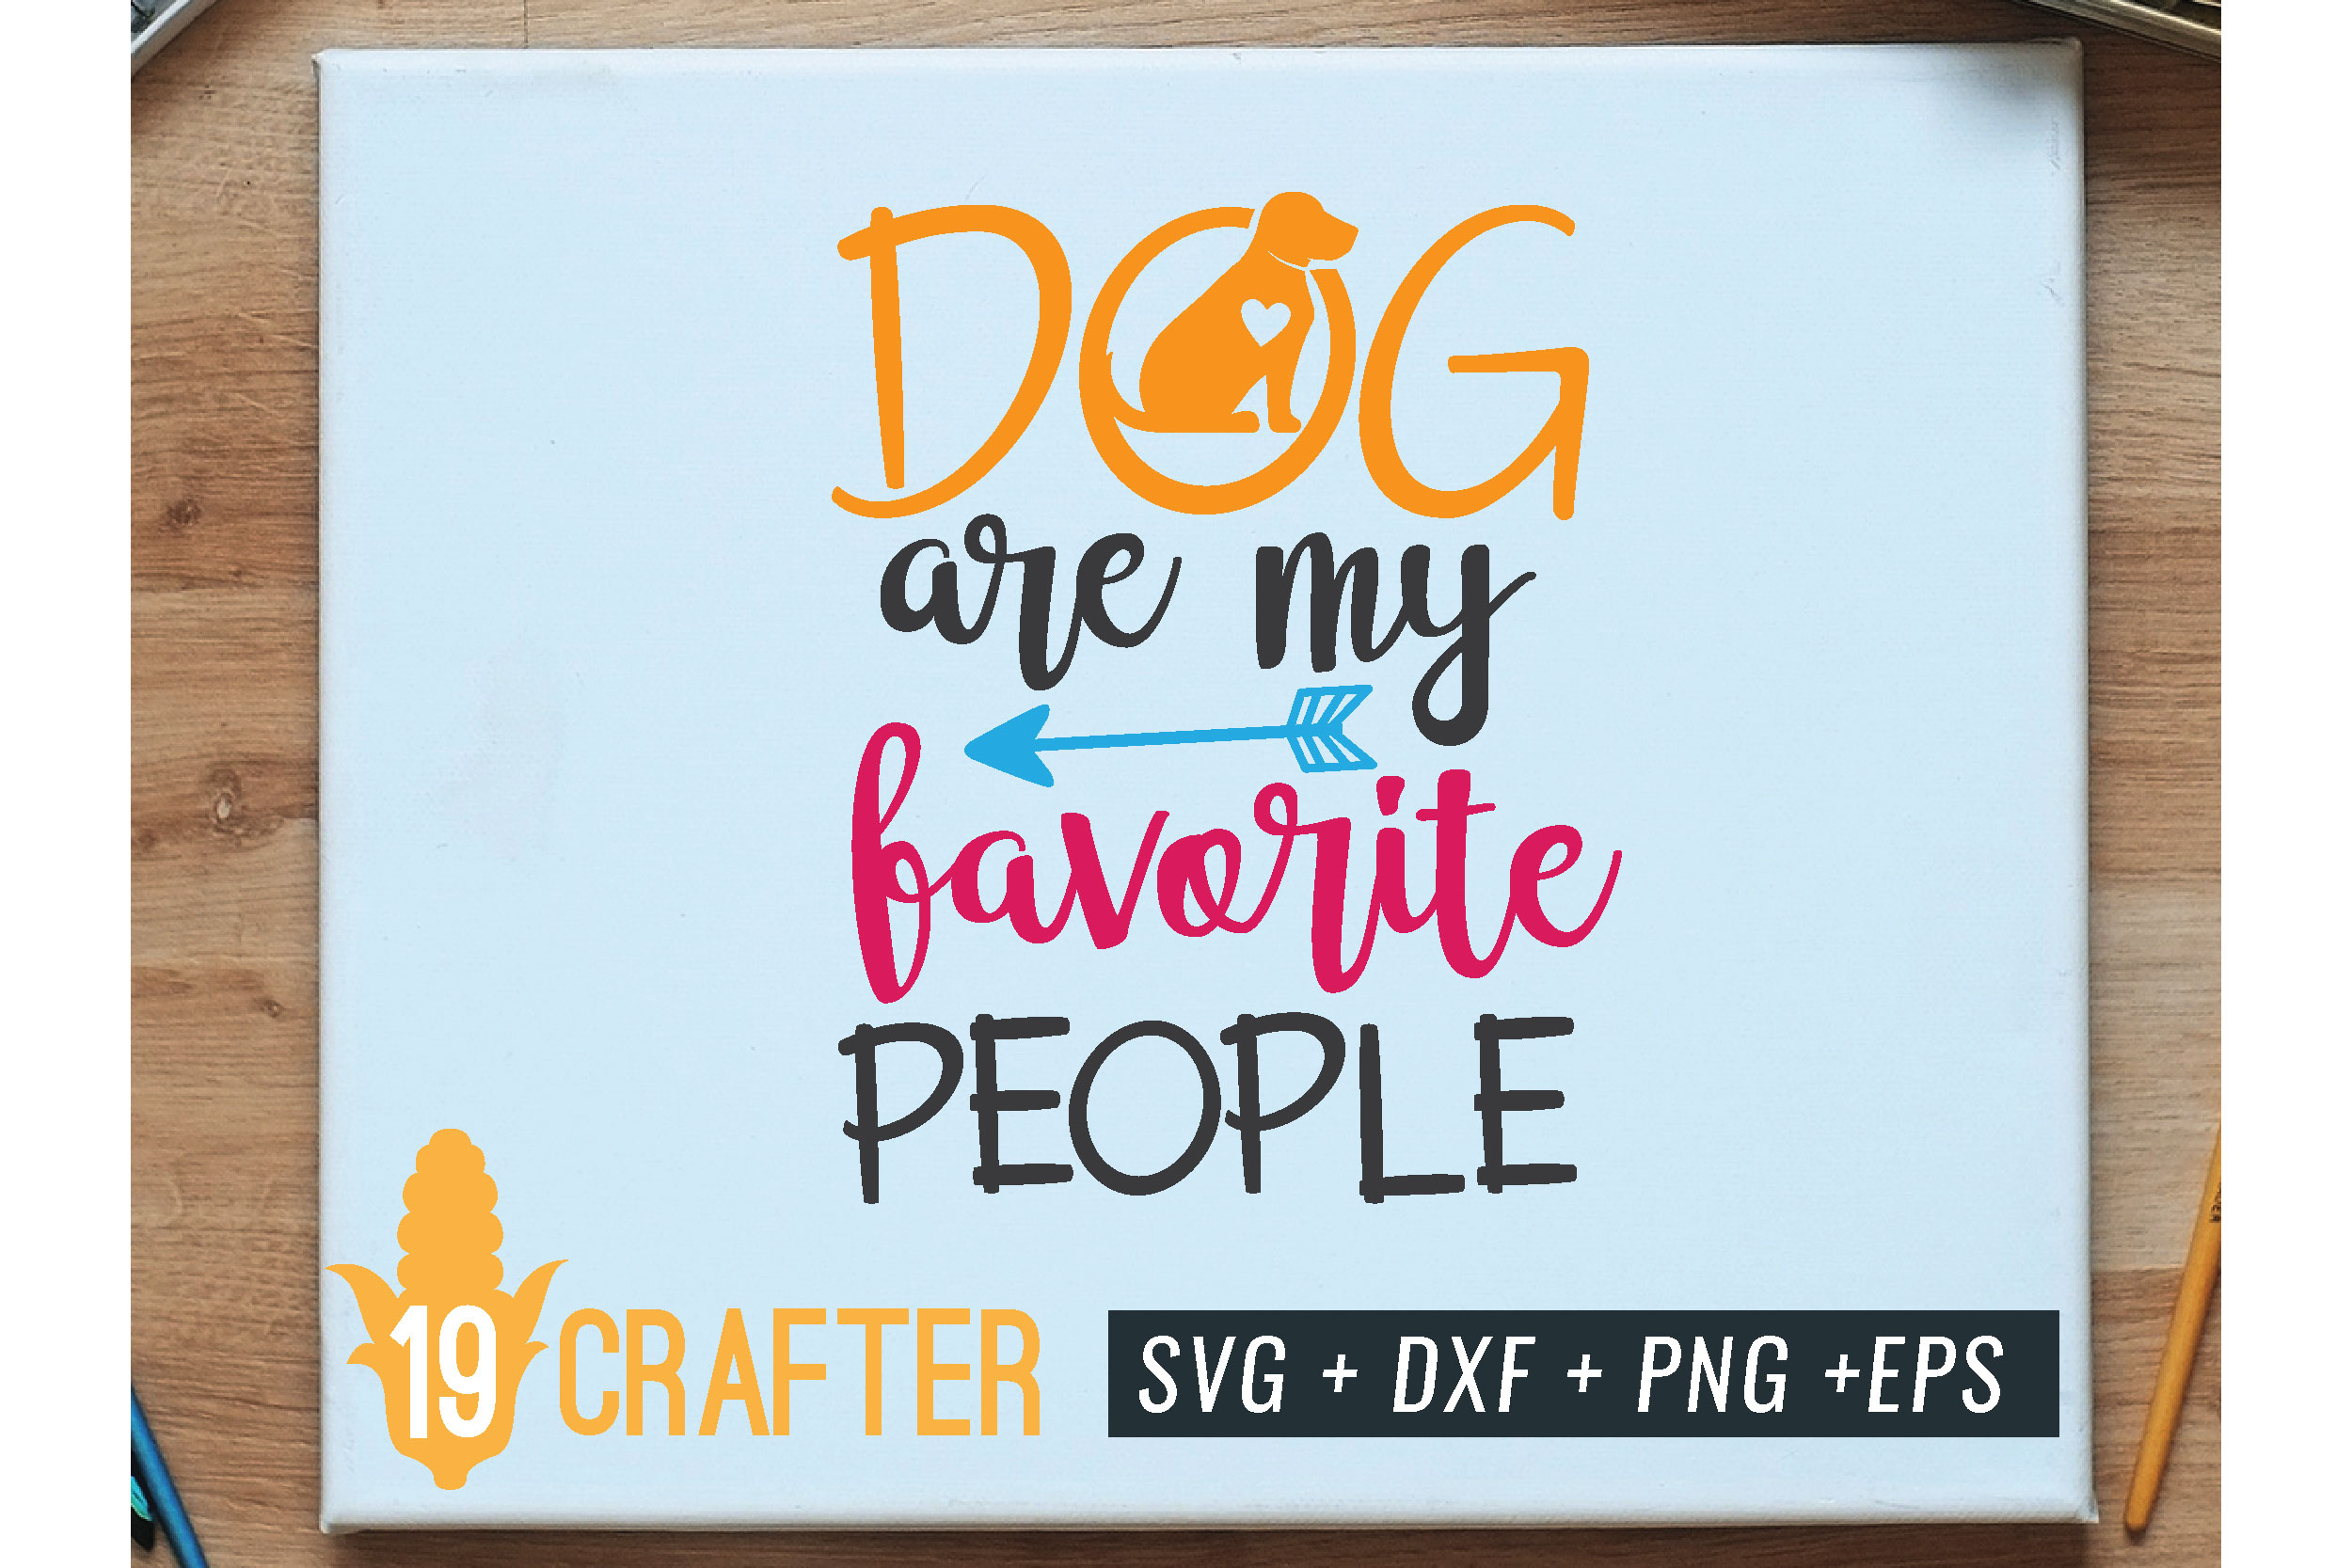 dog are my favorite people svg dxf png eps example image 1